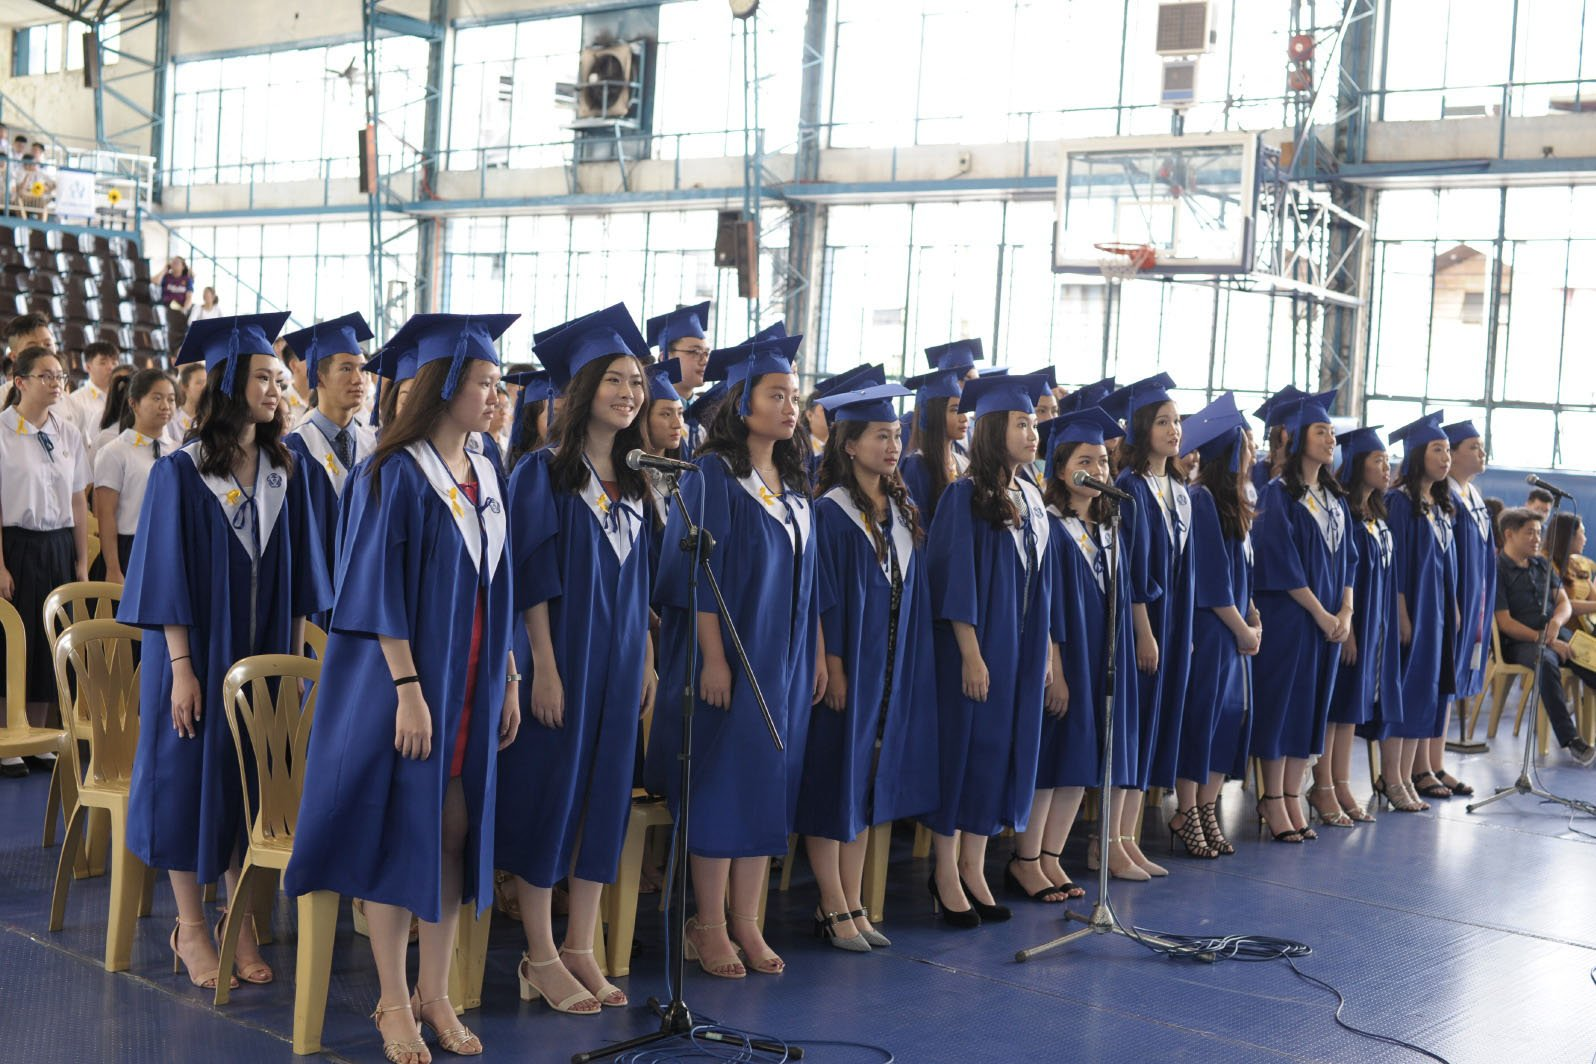 Commencement and Moving Up Ceremonies for Elementary, Junior High, and Senior High